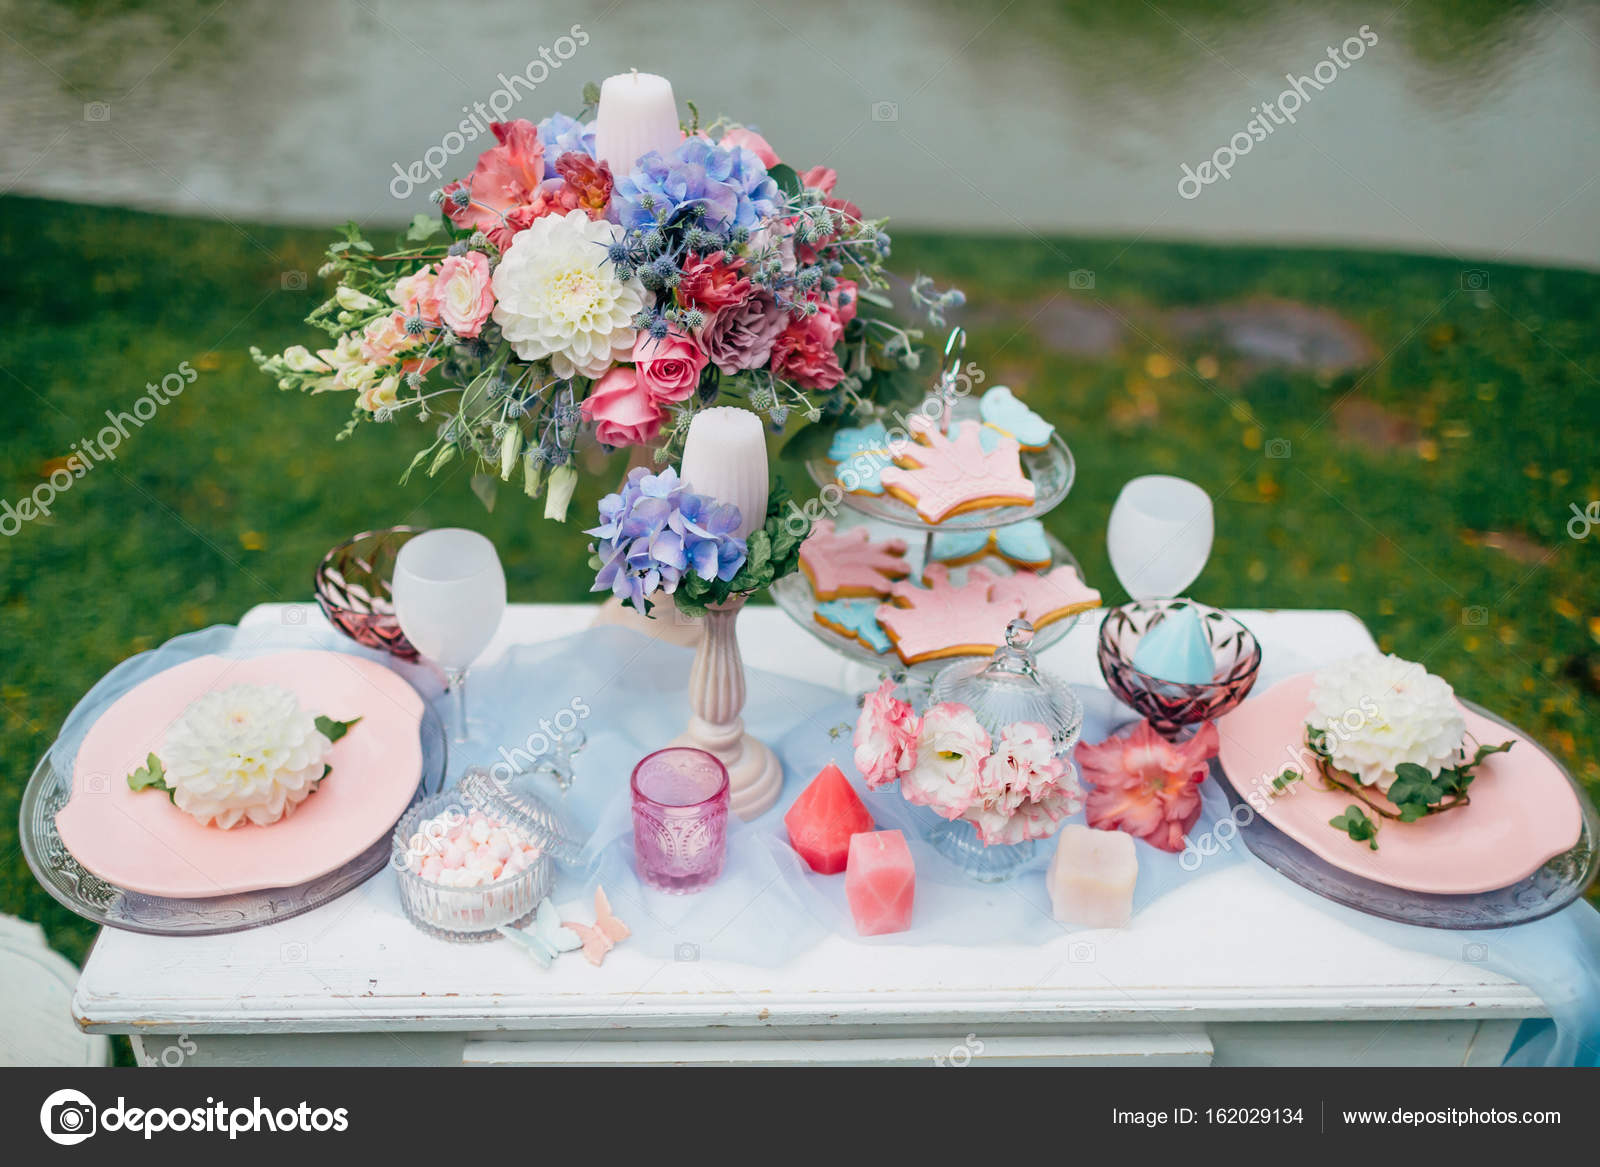 Wedding decoration in the style of boho floral arrangement wedding decoration in the style of boho floral arrangement decorated table in the garden junglespirit Image collections